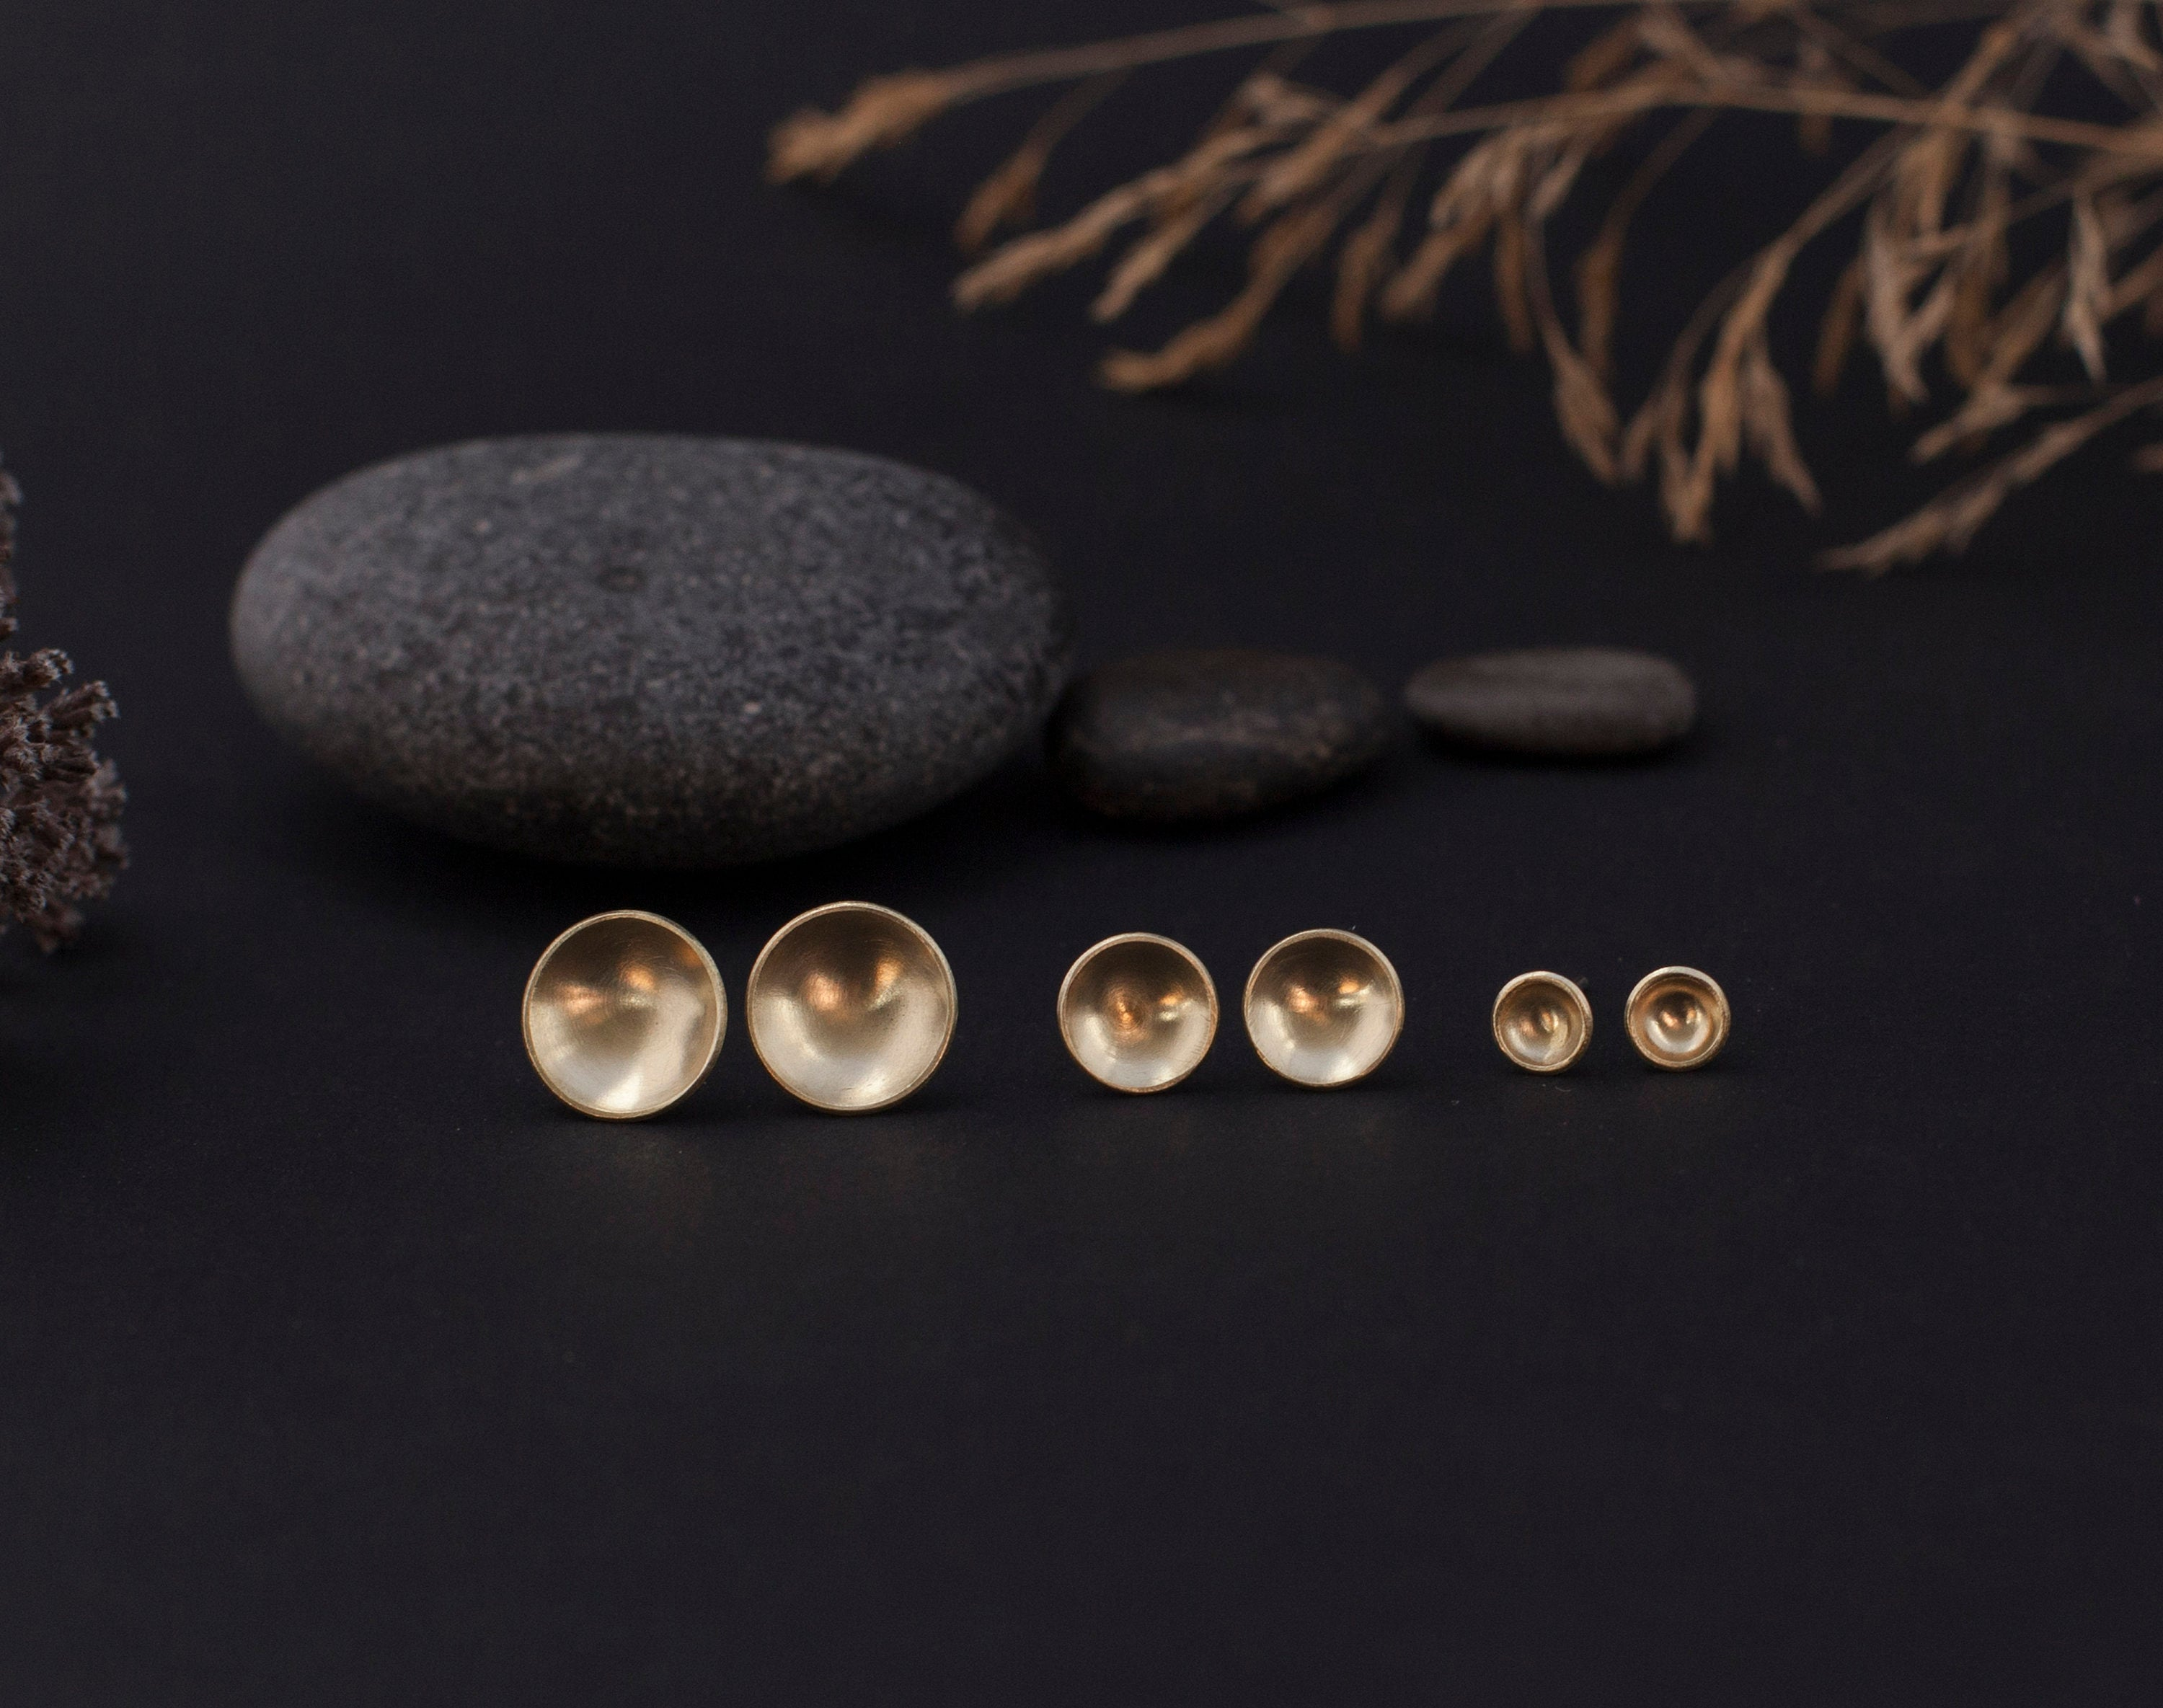 Small brass bowl earrings with silver ear posts - 6mm ø (made to order)